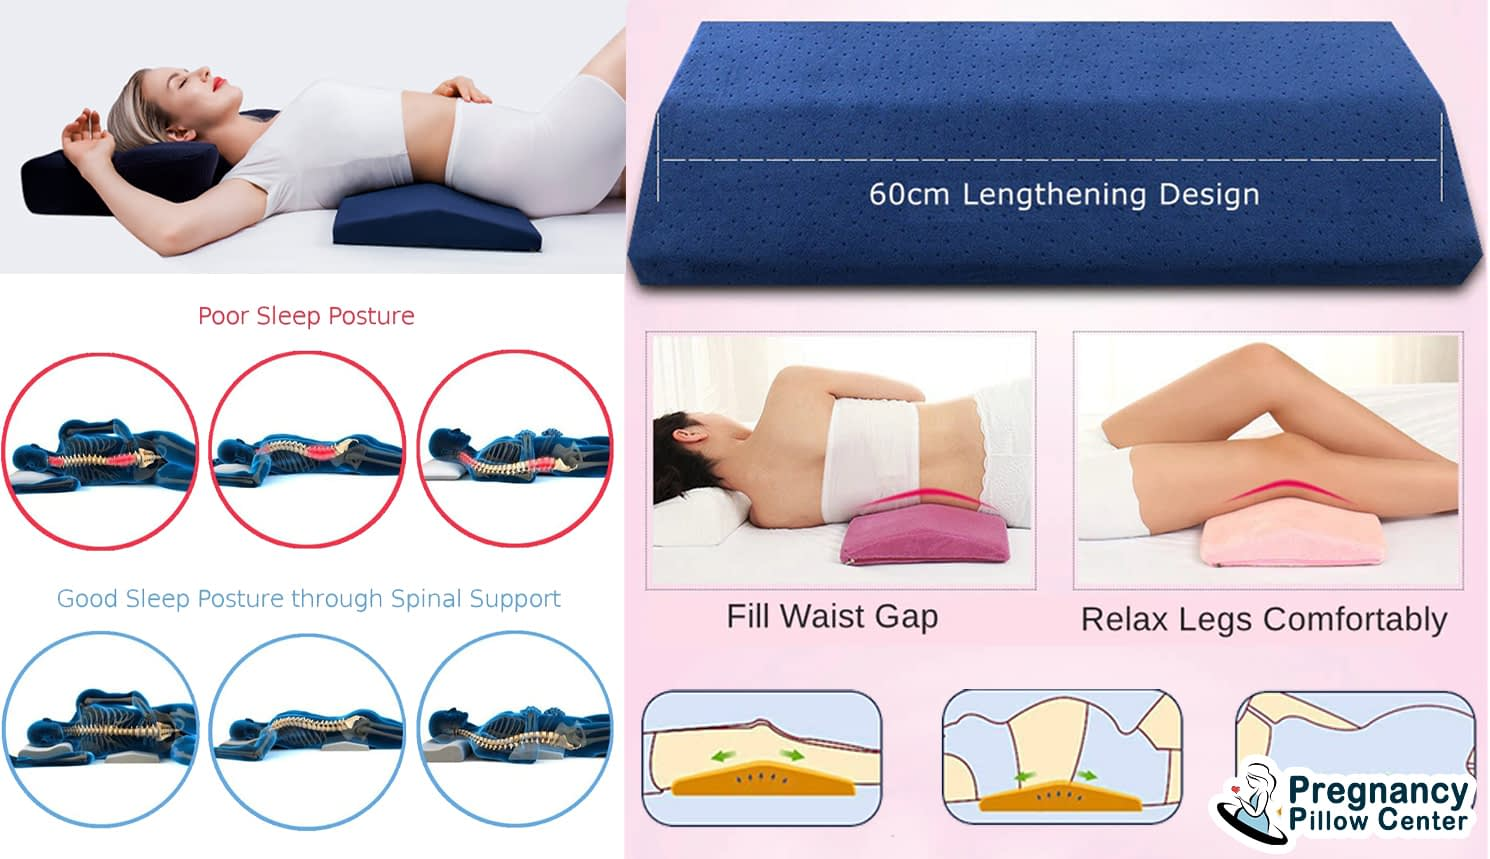 Lumber back support-sleeping pregnancy pillow helps good posture when sleeping and use for the spine, knee during maternity..